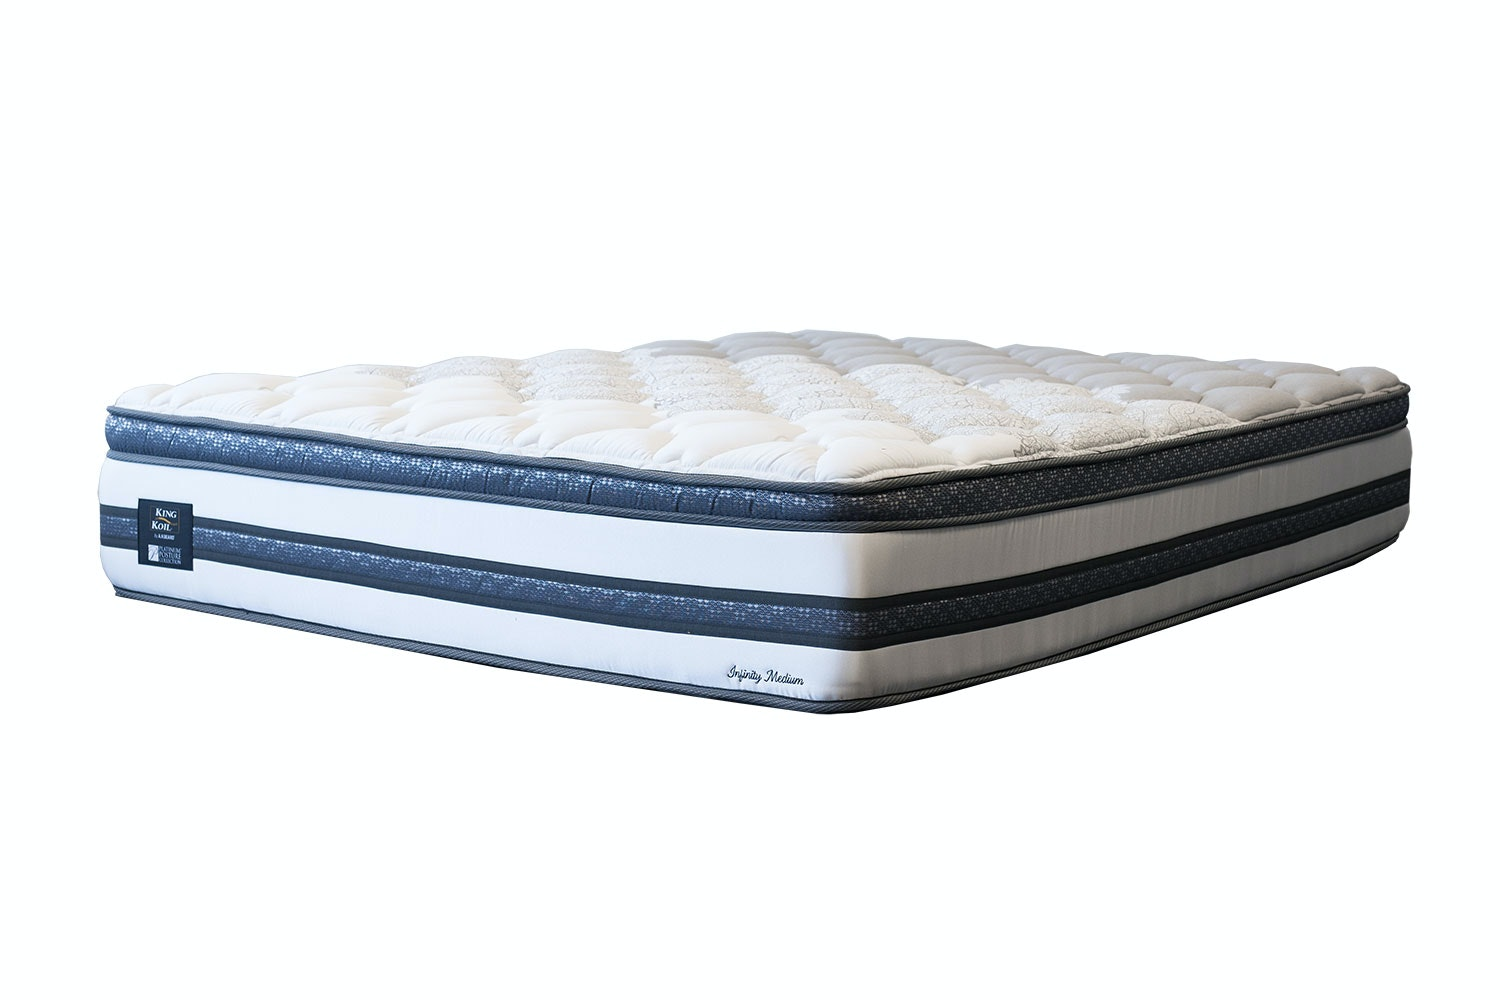 Infinity Medium Double Mattress by King Koil